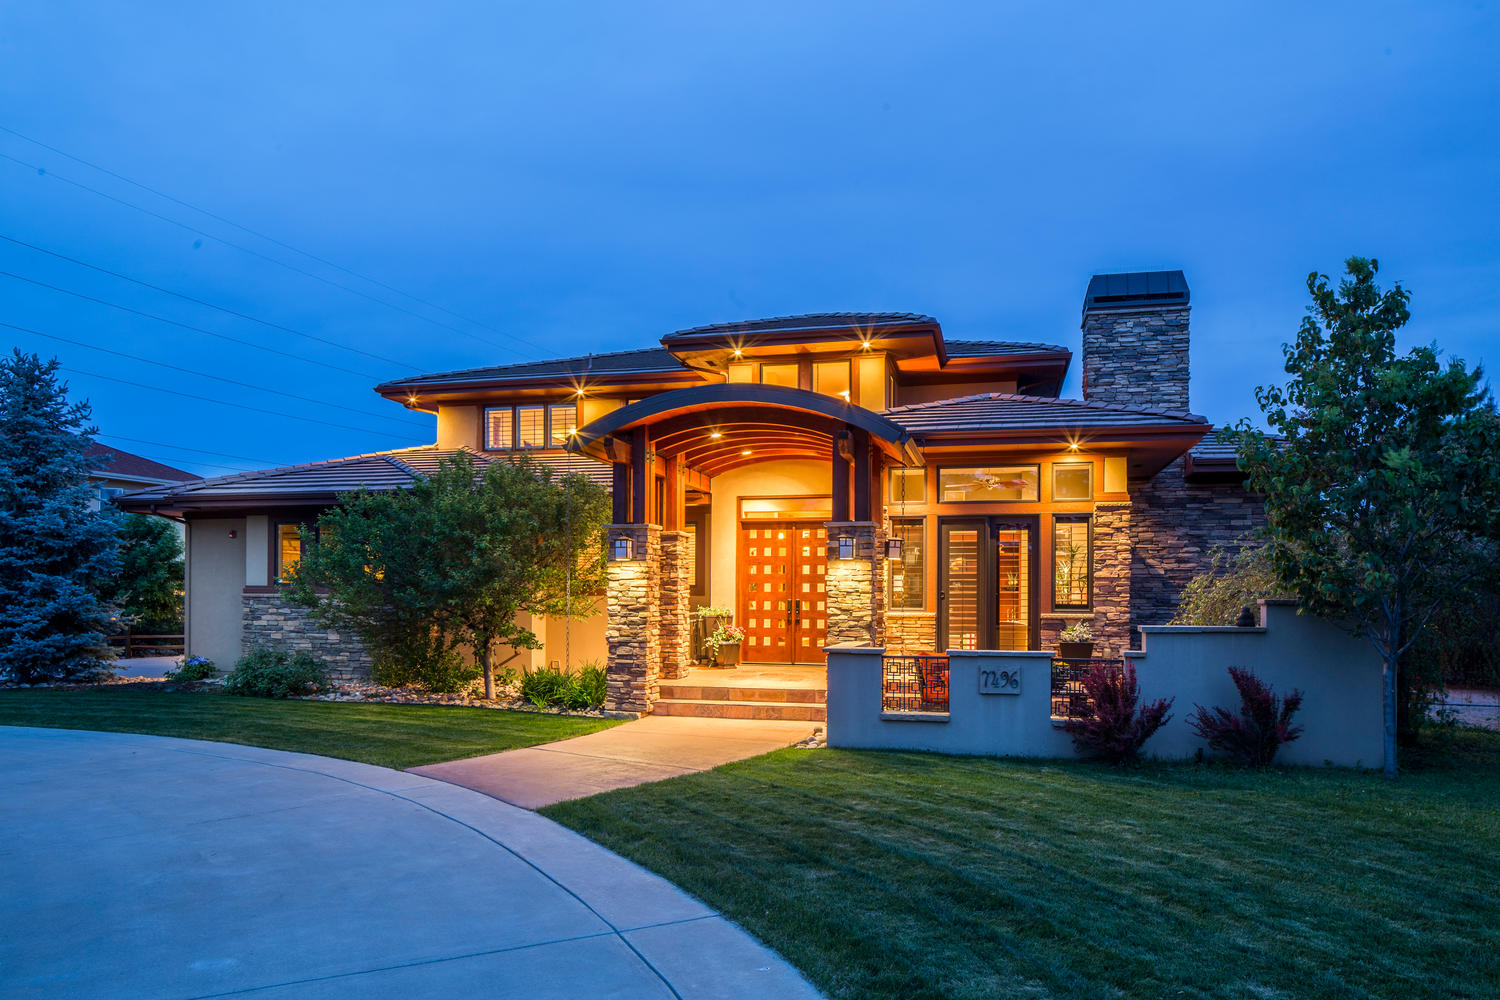 Single Family Home for Sale at Stunning Custom Home 7496 Panorama Dr Boulder, Colorado, 80303 United States